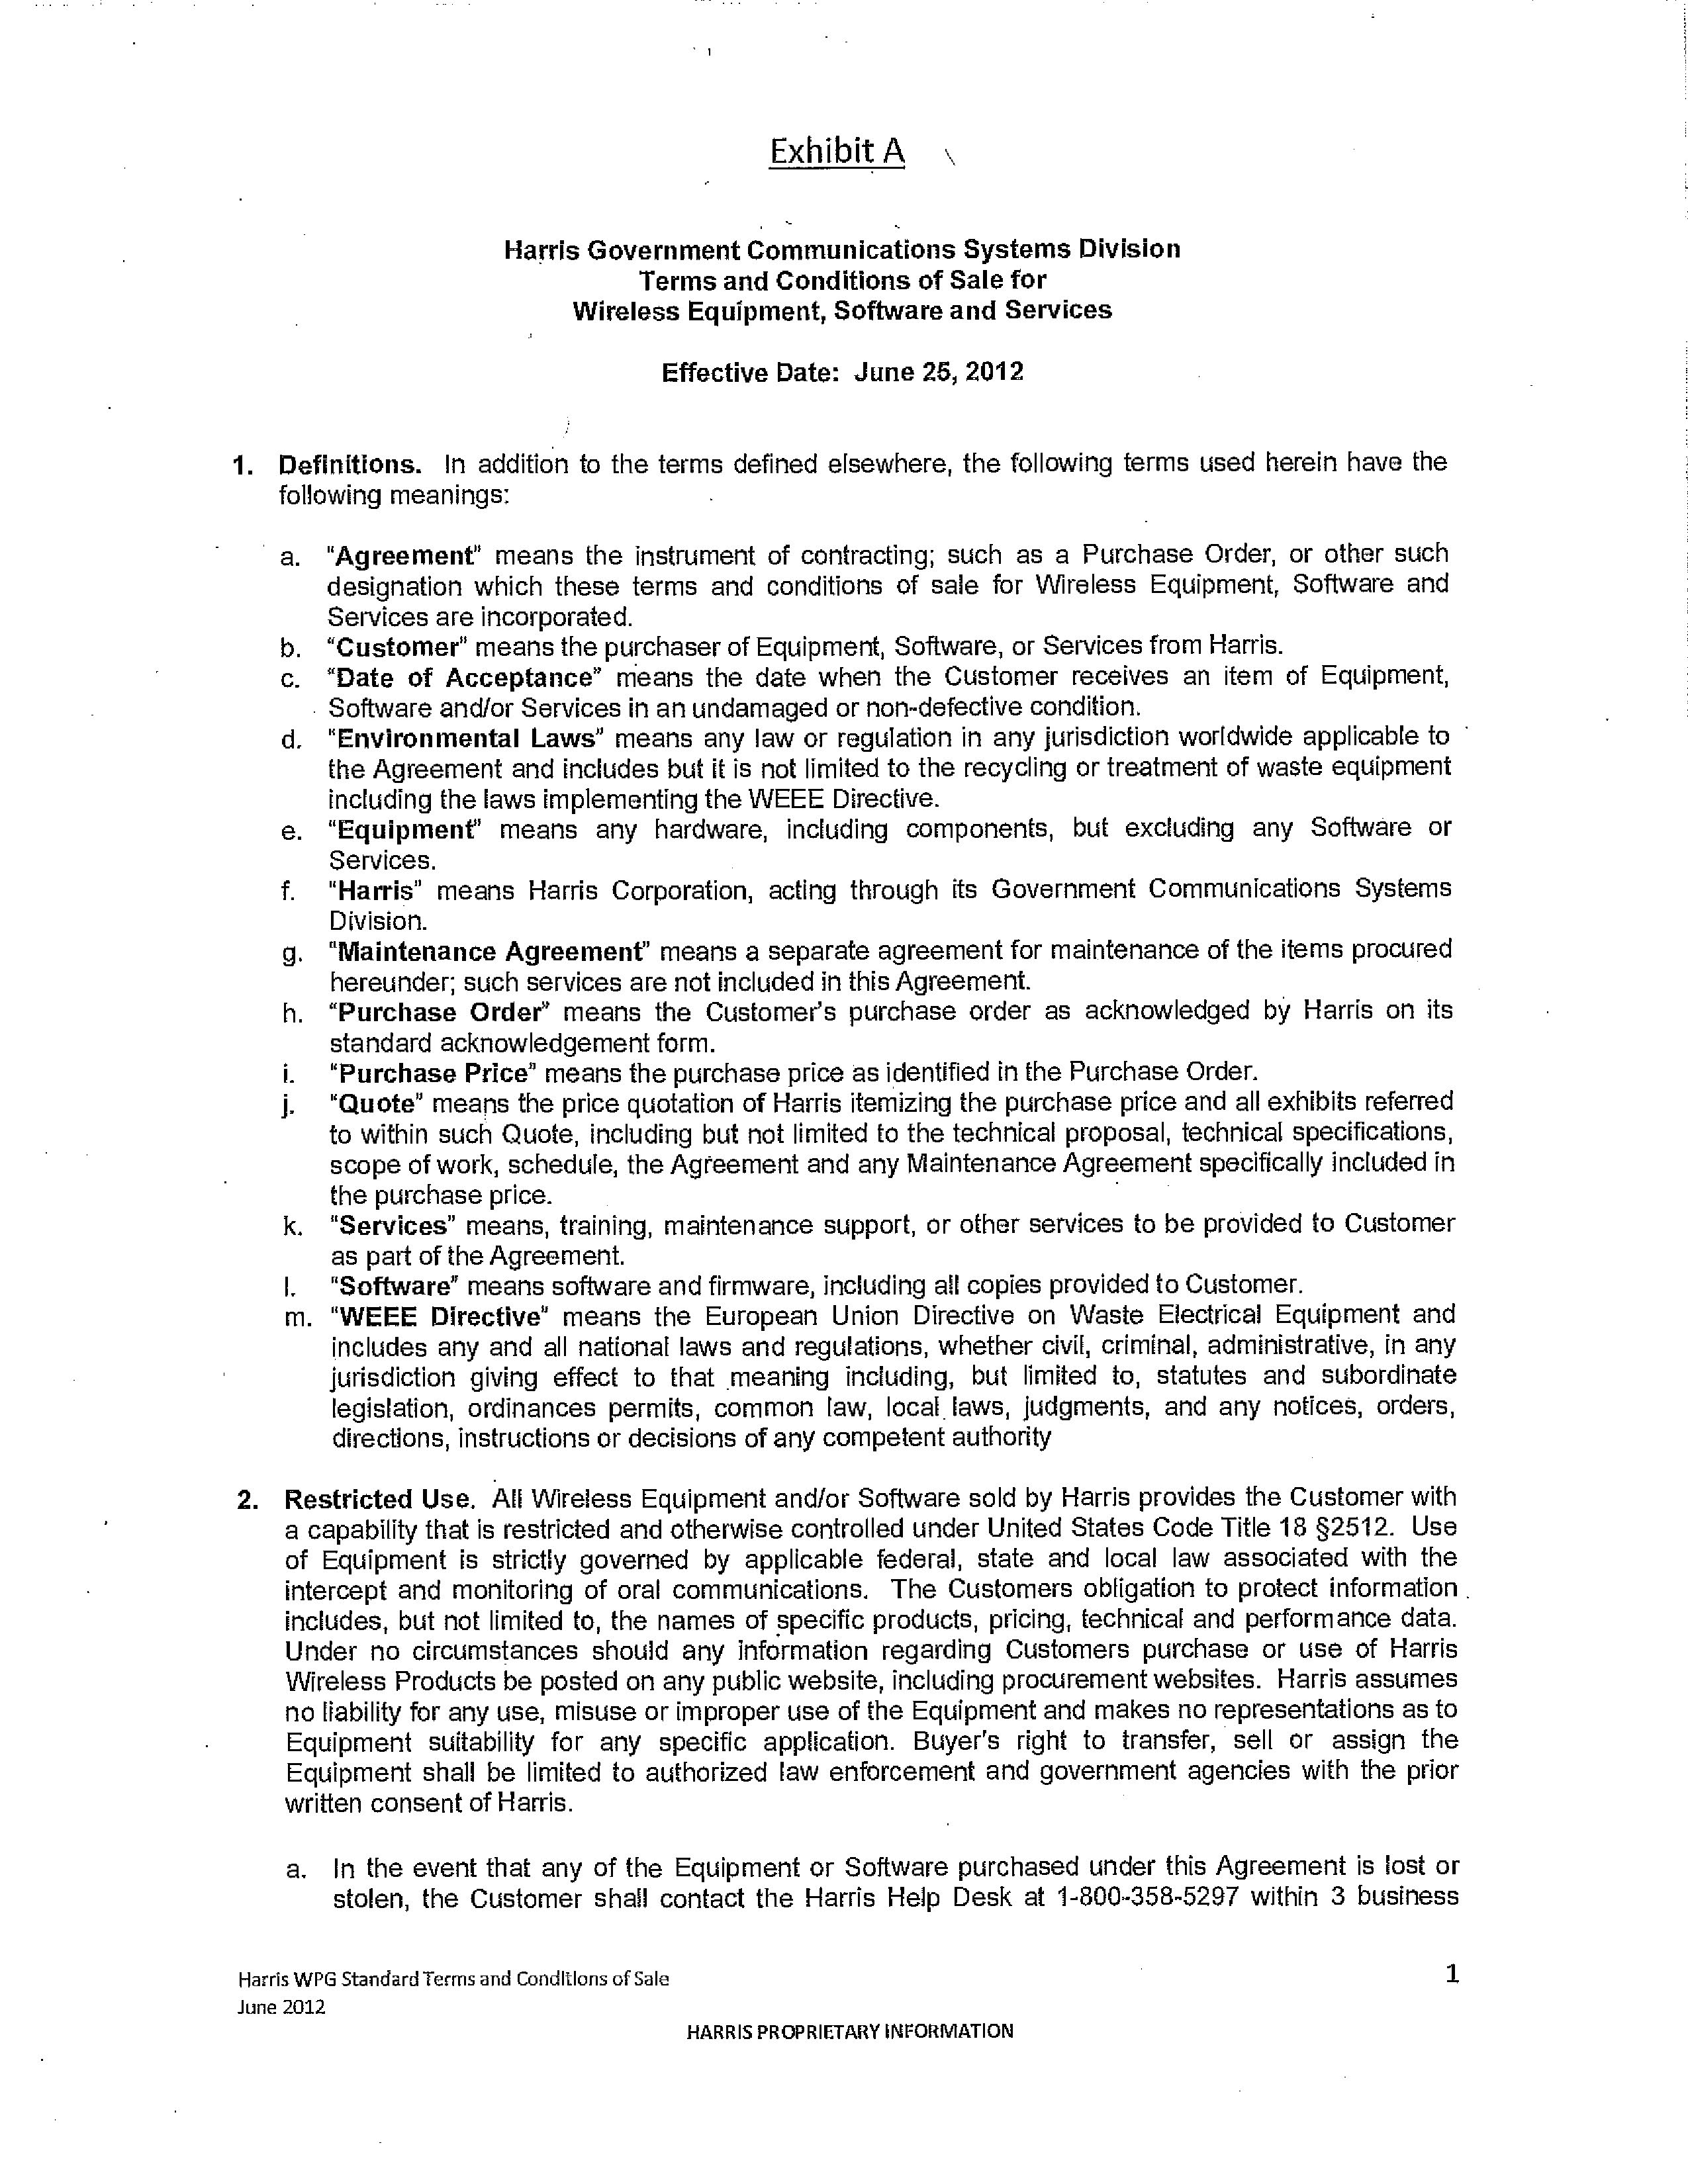 infotrack search standard terms document